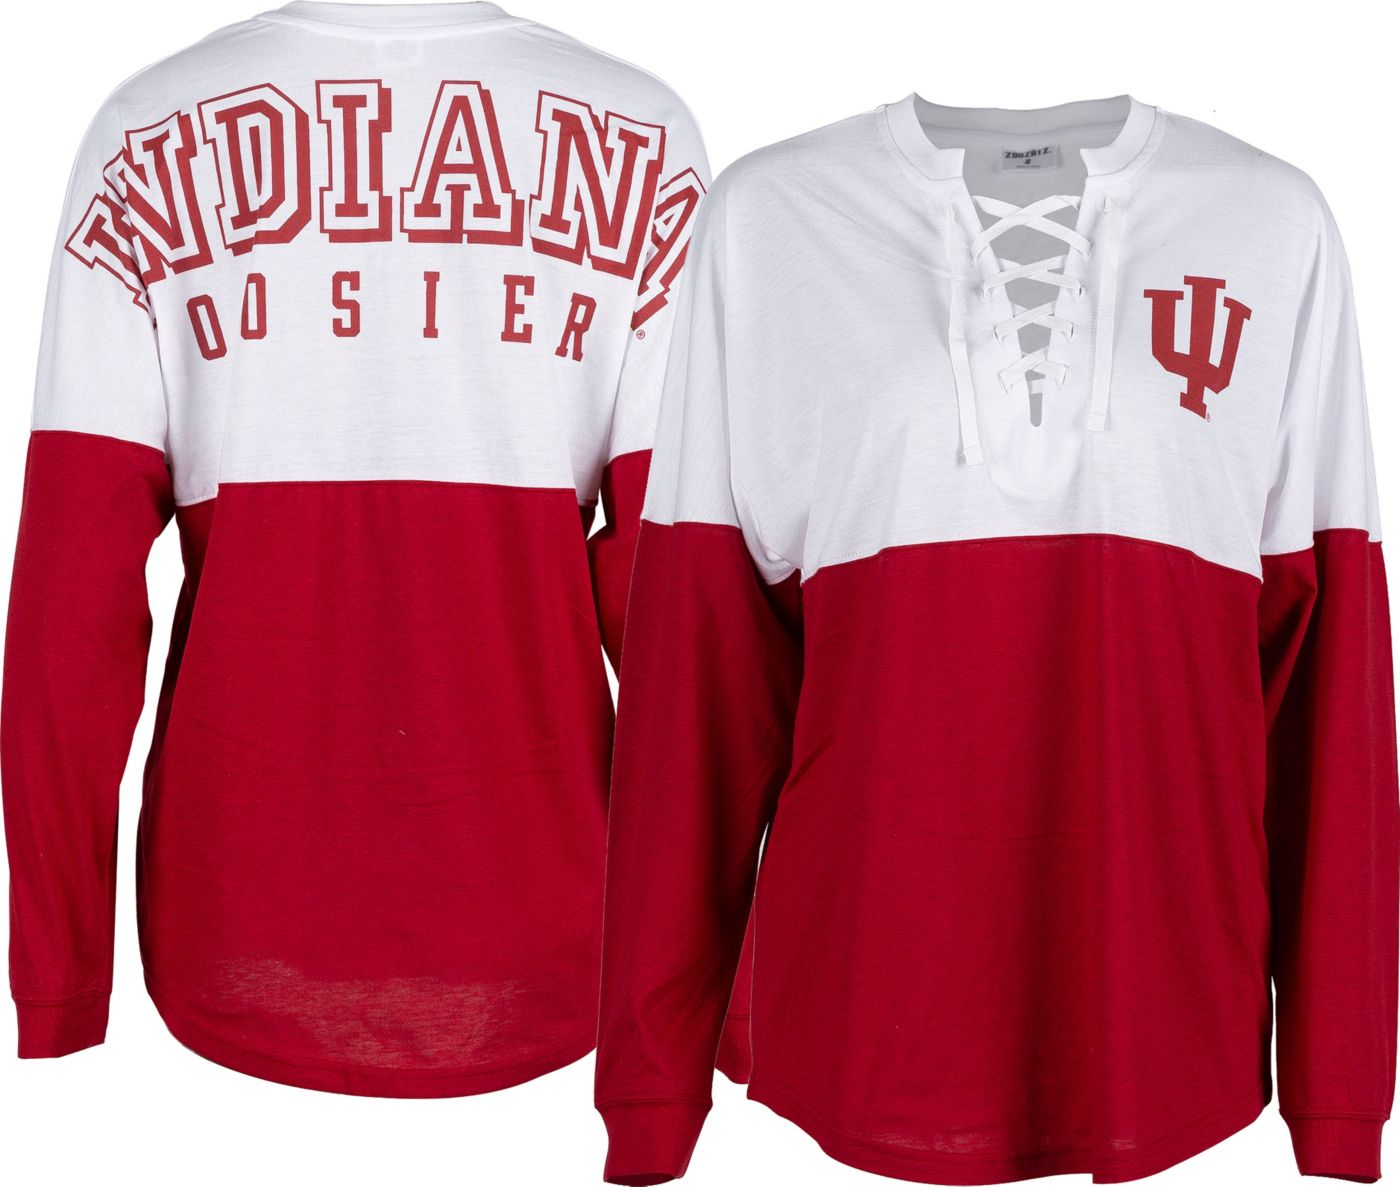 ZooZatz Women's Indiana Hoosiers Crimson Clearblock Long Sleeve T-Shirt